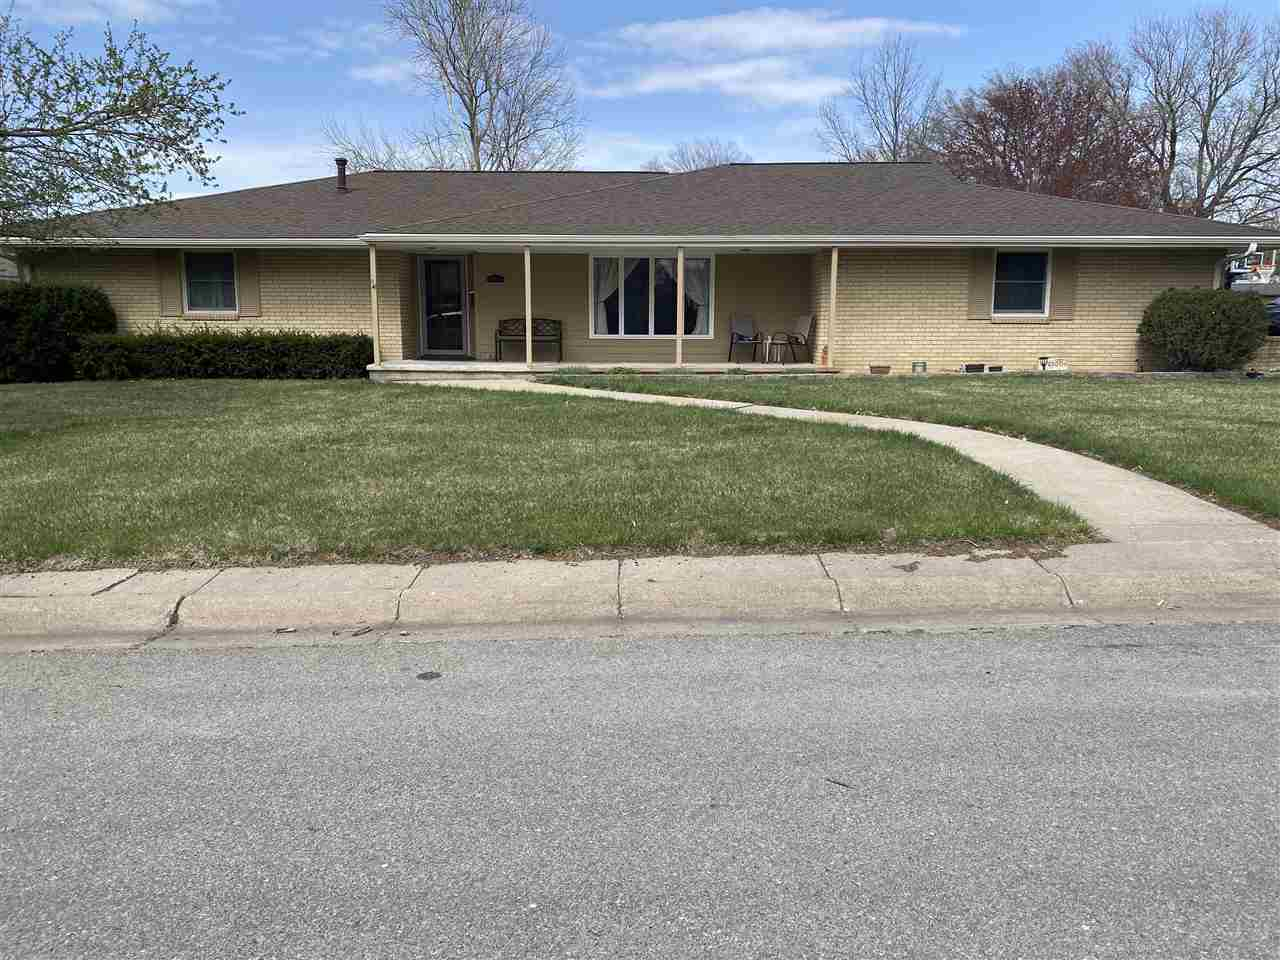 Sprawling, well maintained, beautiful 4 bedroom, 2 1/2 bath ranch home on corner lot. Fantastic kitchen open to the dining and amazing sunroom to enjoy family entertaining inside and out!  No expense was spared in the remodel of this home!  Hardwood floors, carpet, tile, bathroom vanities, shower in main bath, granite countertops and new cabinets in the kitchen, upgraded sunroom, new rooms in the basements, newer siding, newer roof and much more! This is a must see to take in all the grandeur!!  Contact Lori Rogge at 785 556 7162.